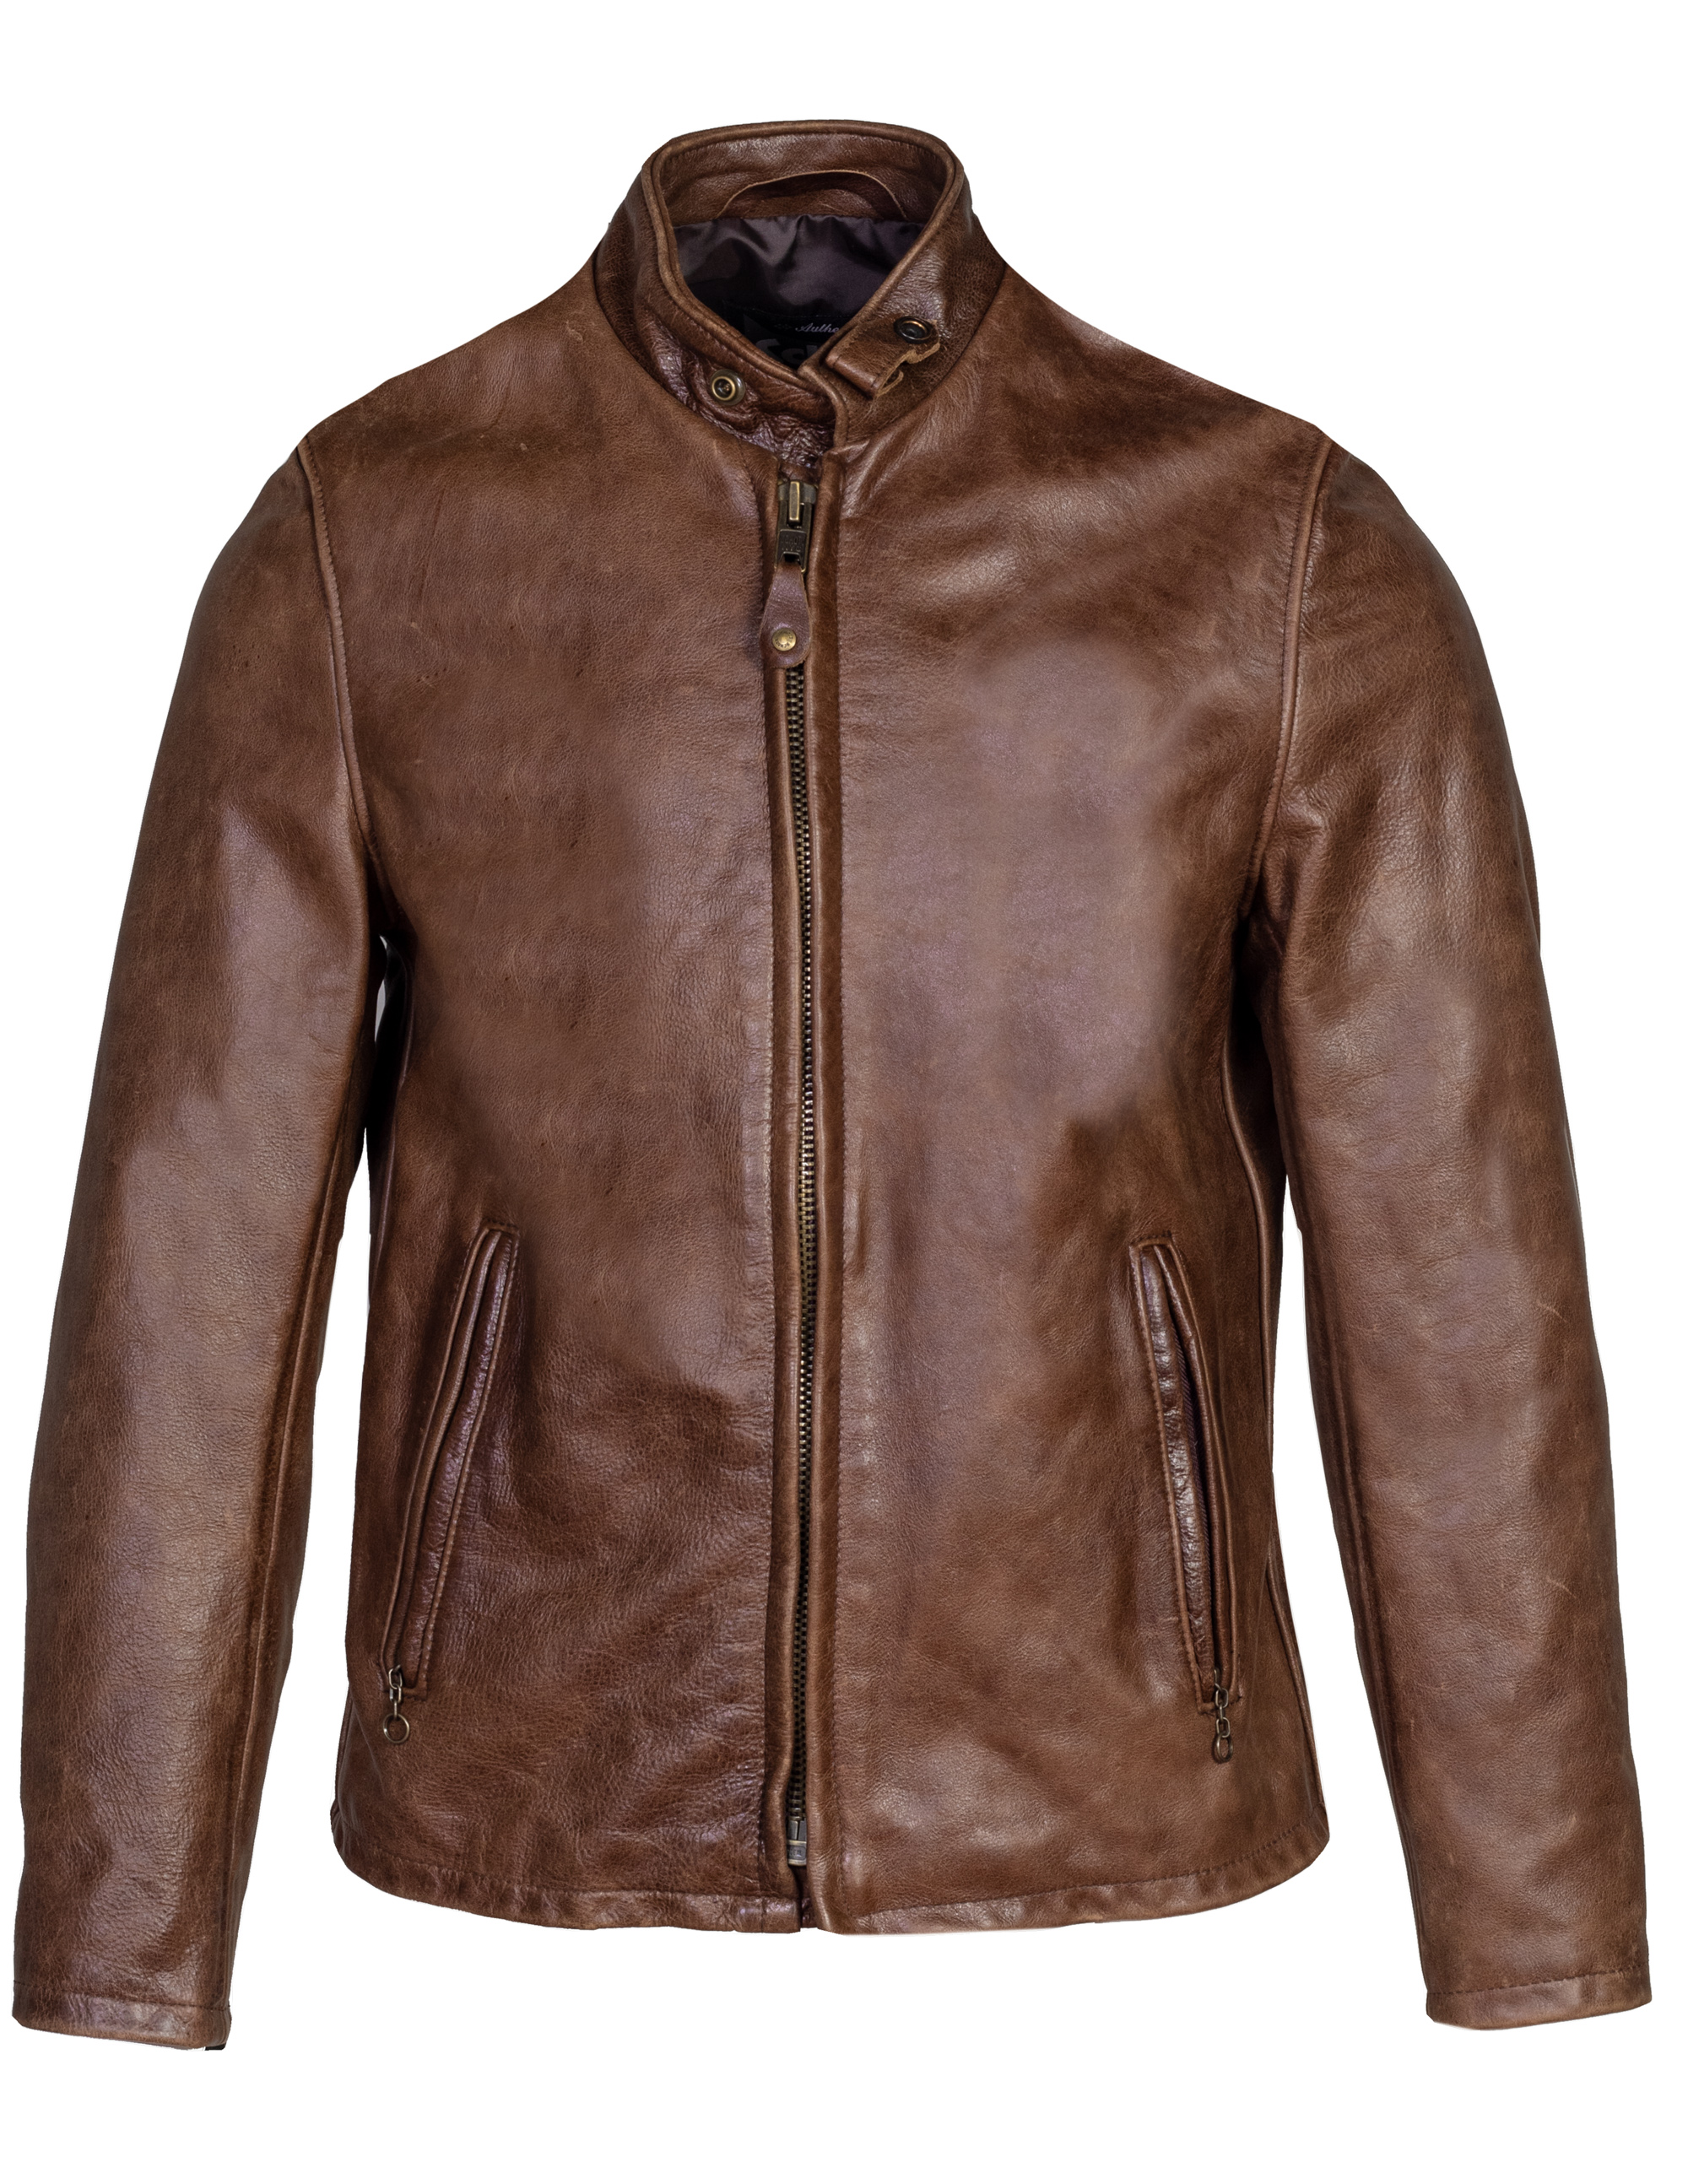 Schott N.Y.C. 654VN Vintaged Cowhide Café Racer Leather Jacket